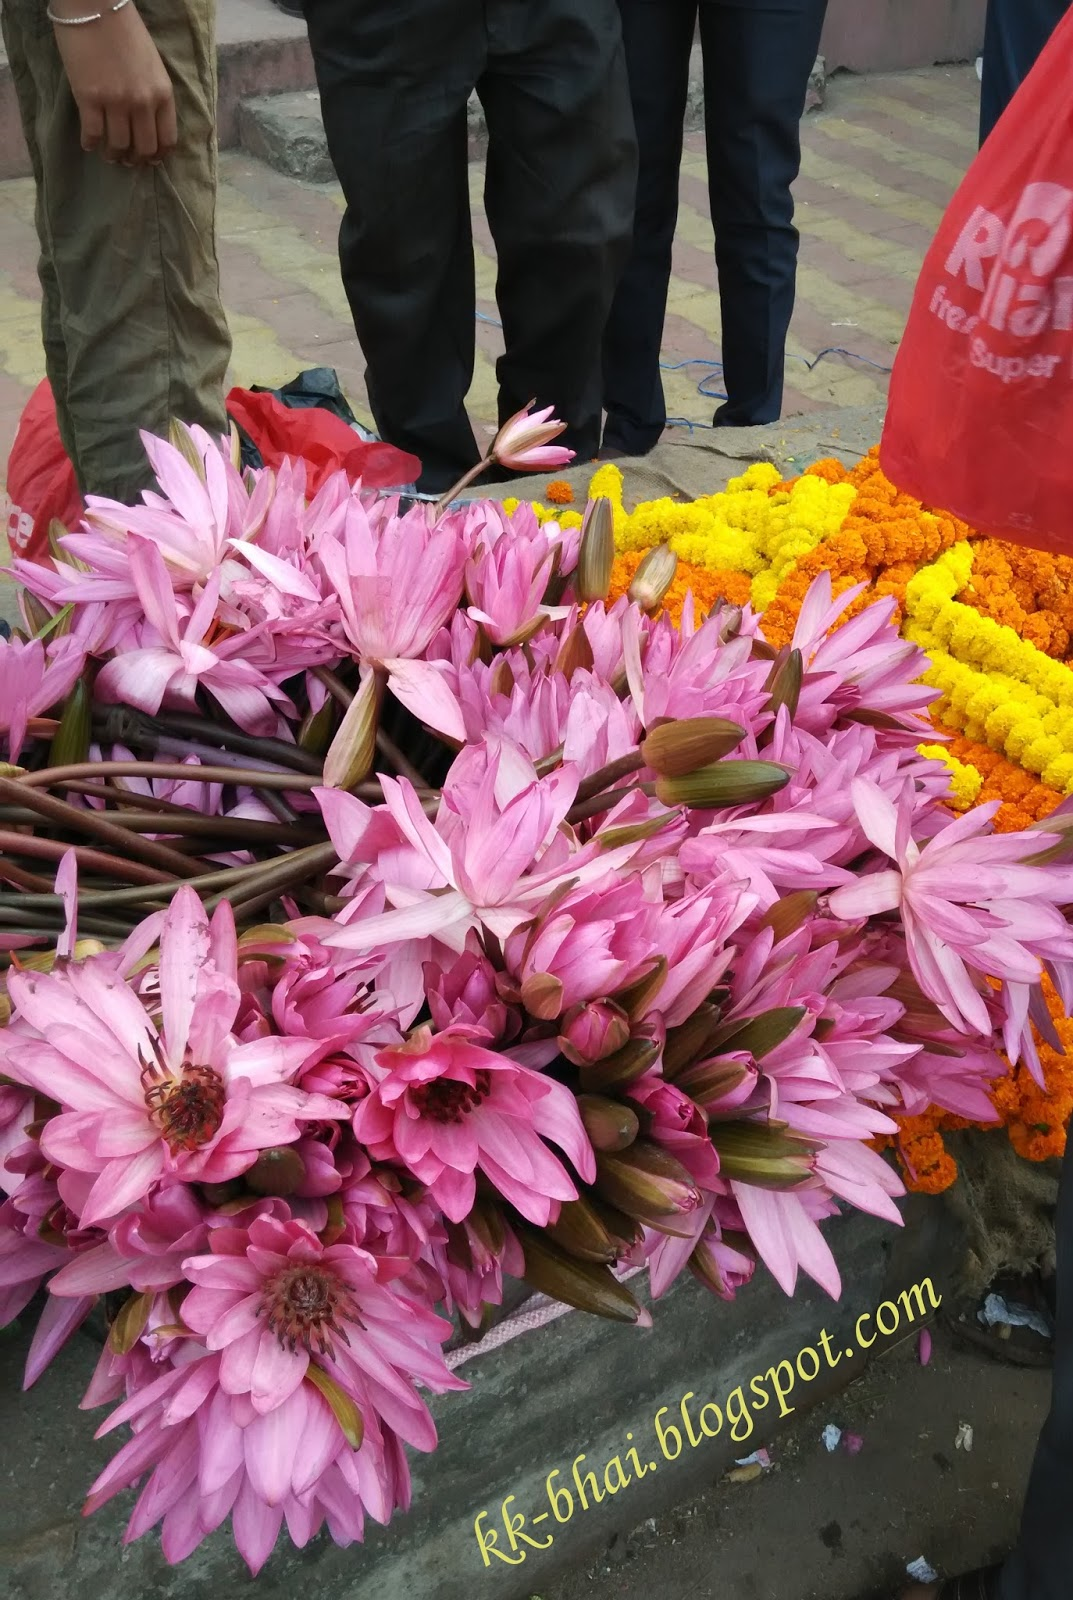 Puja flowers and other things used in puja worship tagetes it is also a favorite flower of goddess lakshmi due to its golden color during festival of deepawali lakshmi puja the demand of genda flowers increases izmirmasajfo